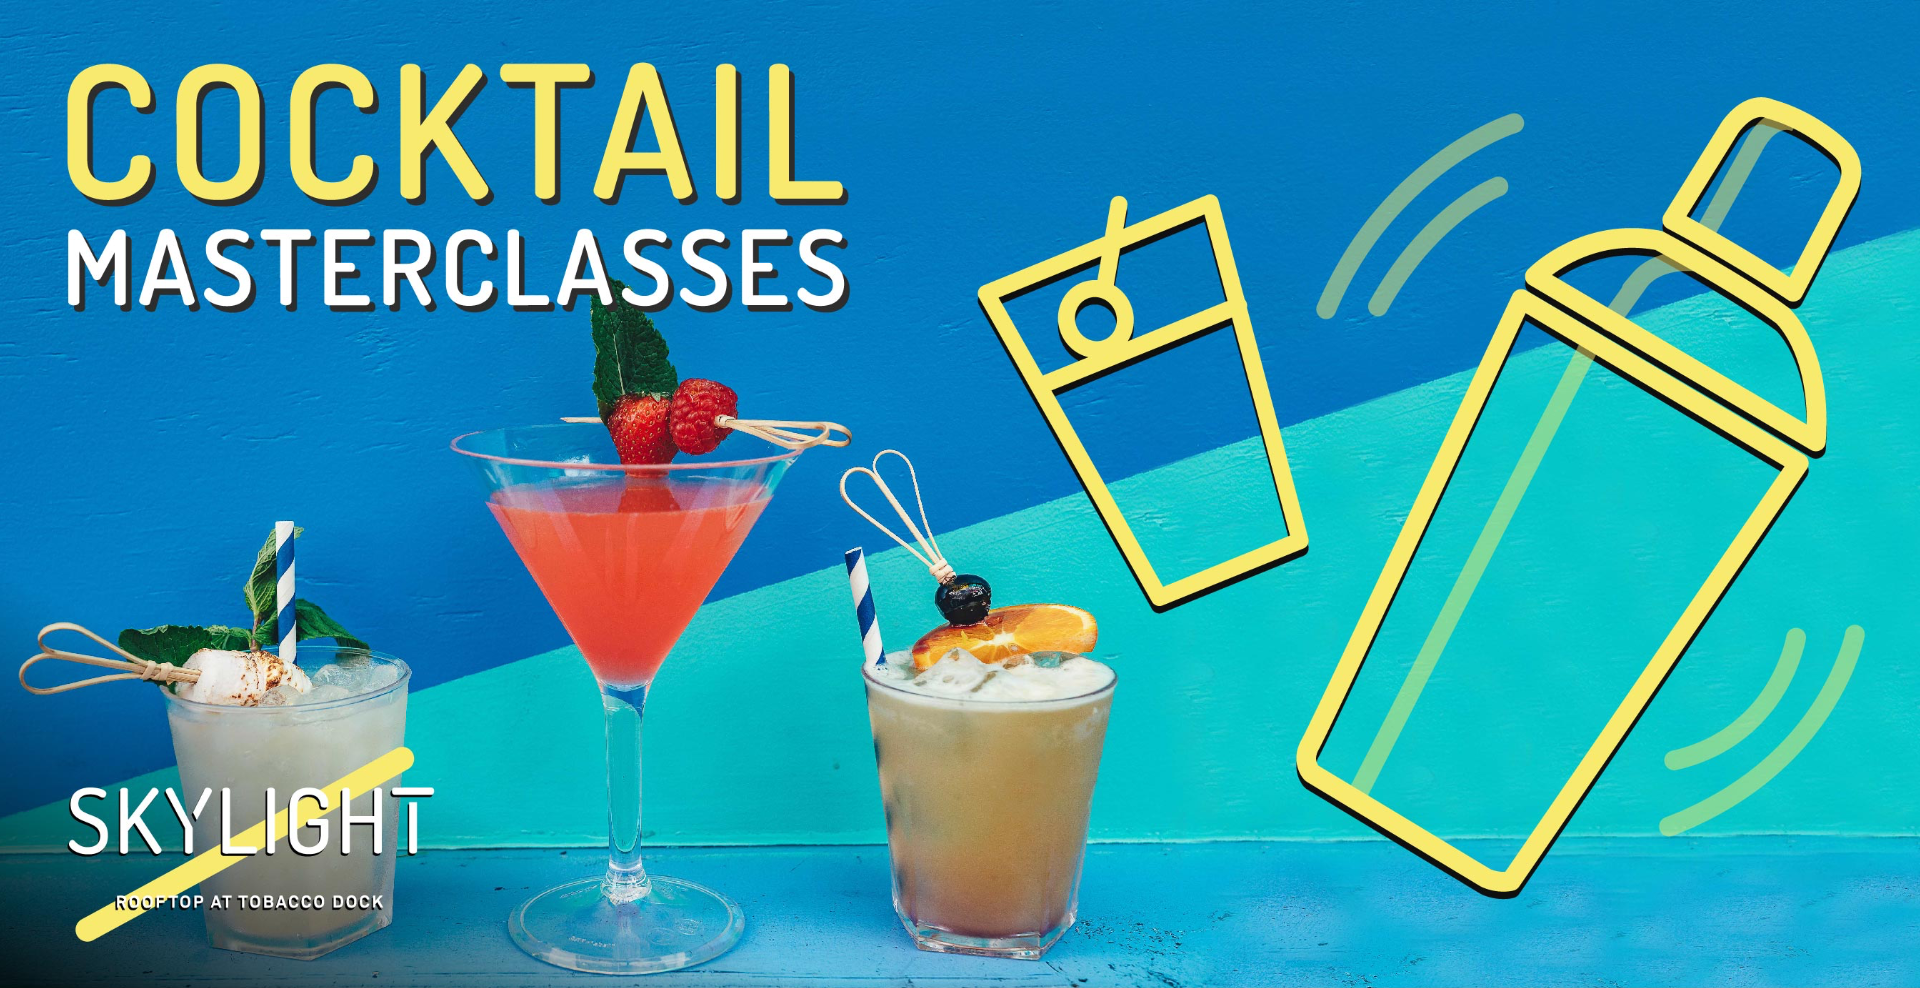 Skylight Cocktail Masterclass